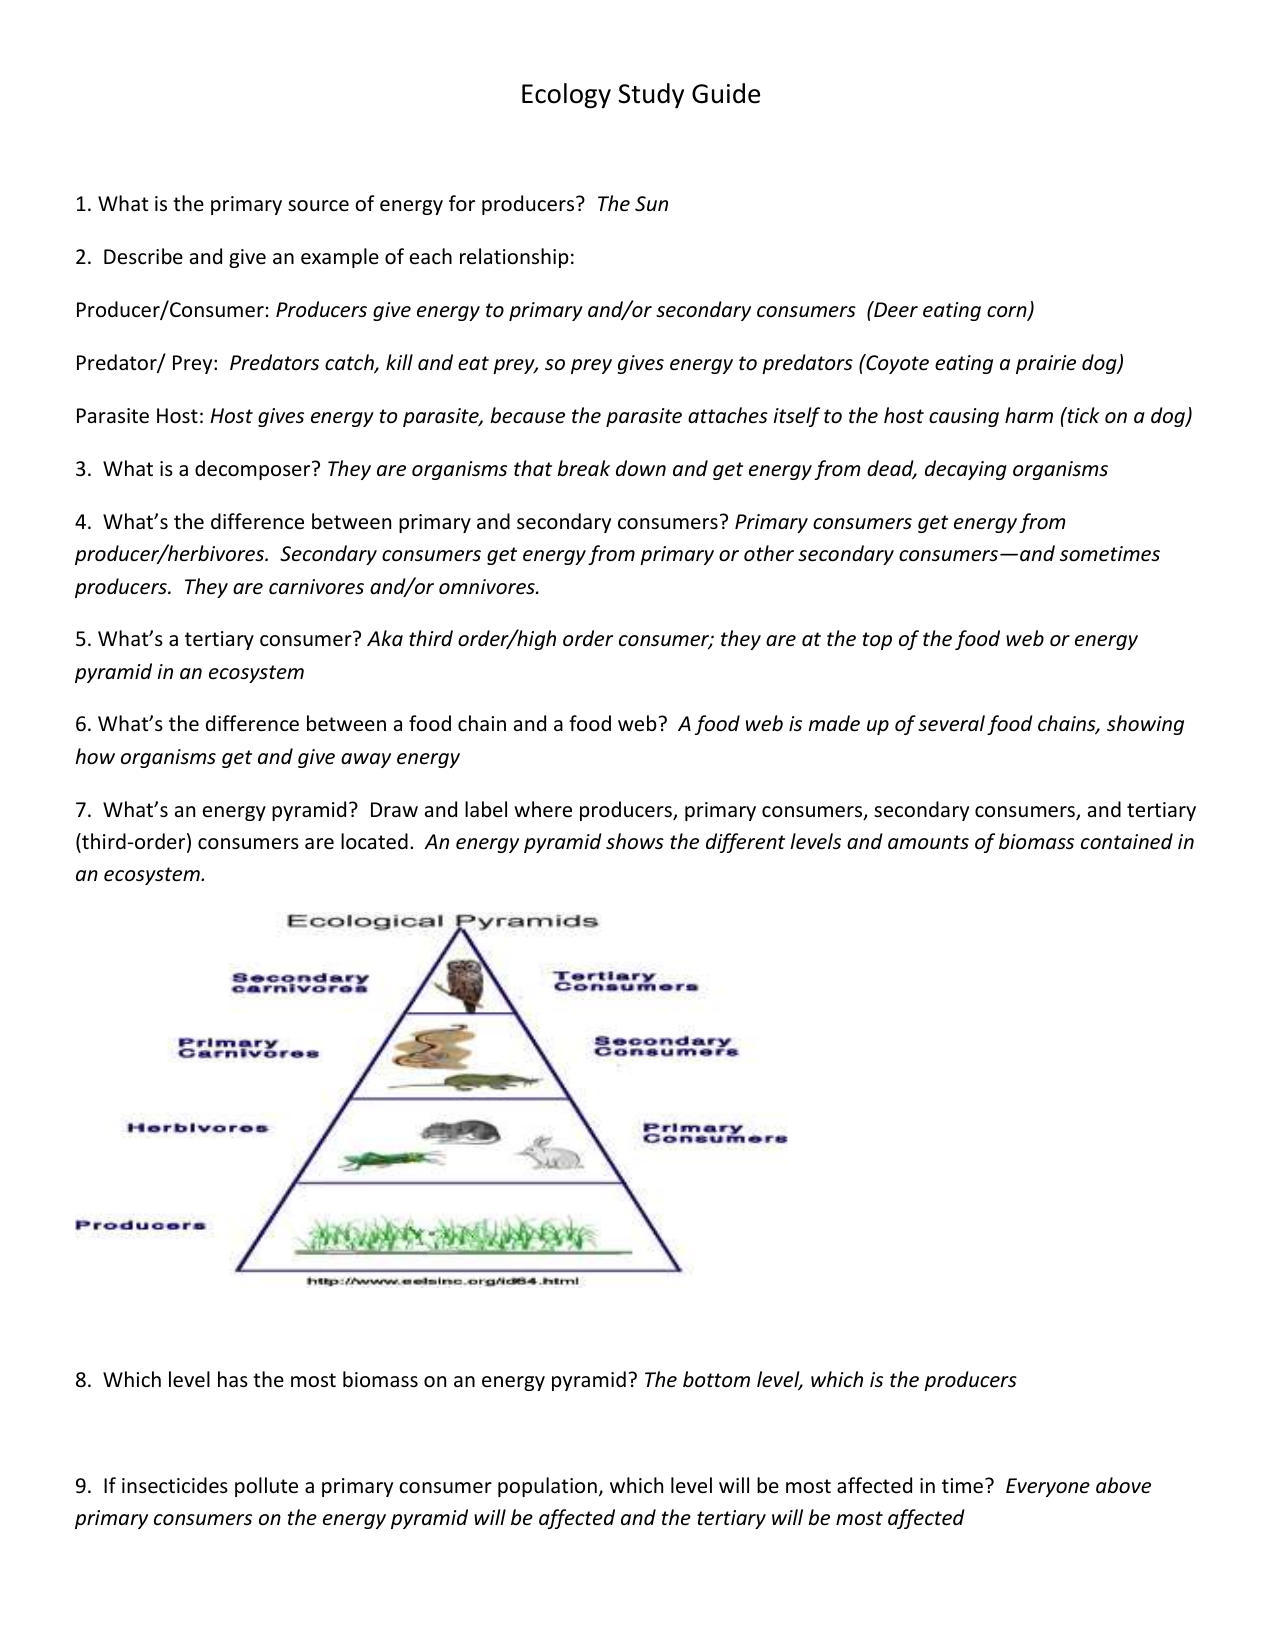 worksheet Ecology Review Worksheet ecology study guide 1 what is the primary source of energy for